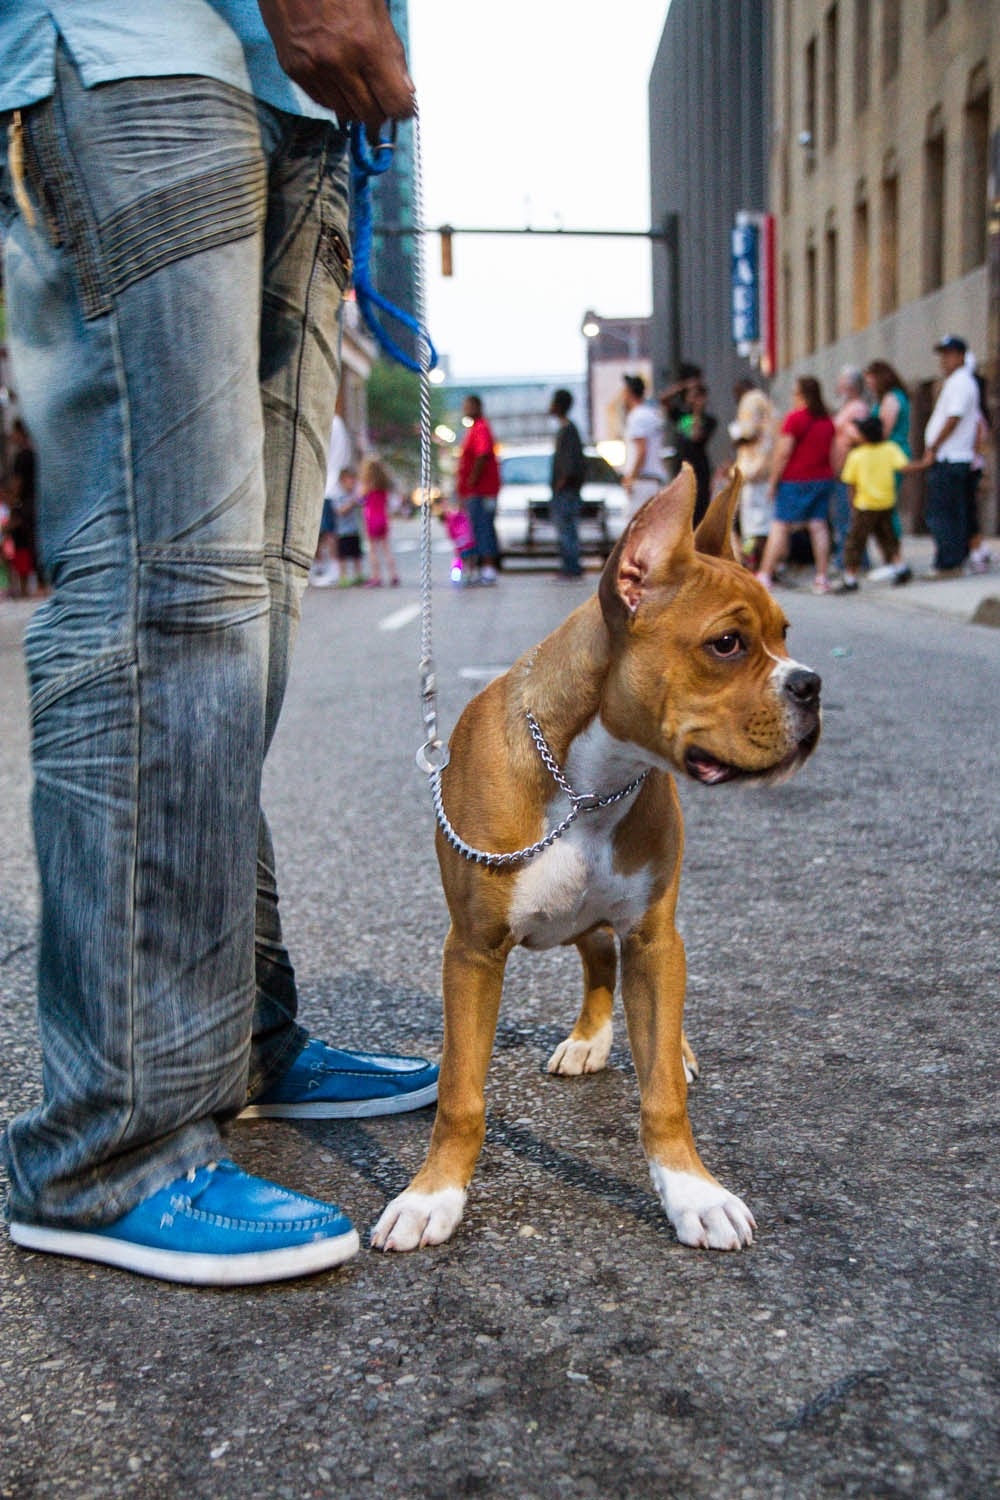 Grabbed a shot of this pup (a boxer I think?) as we walked around the city before…